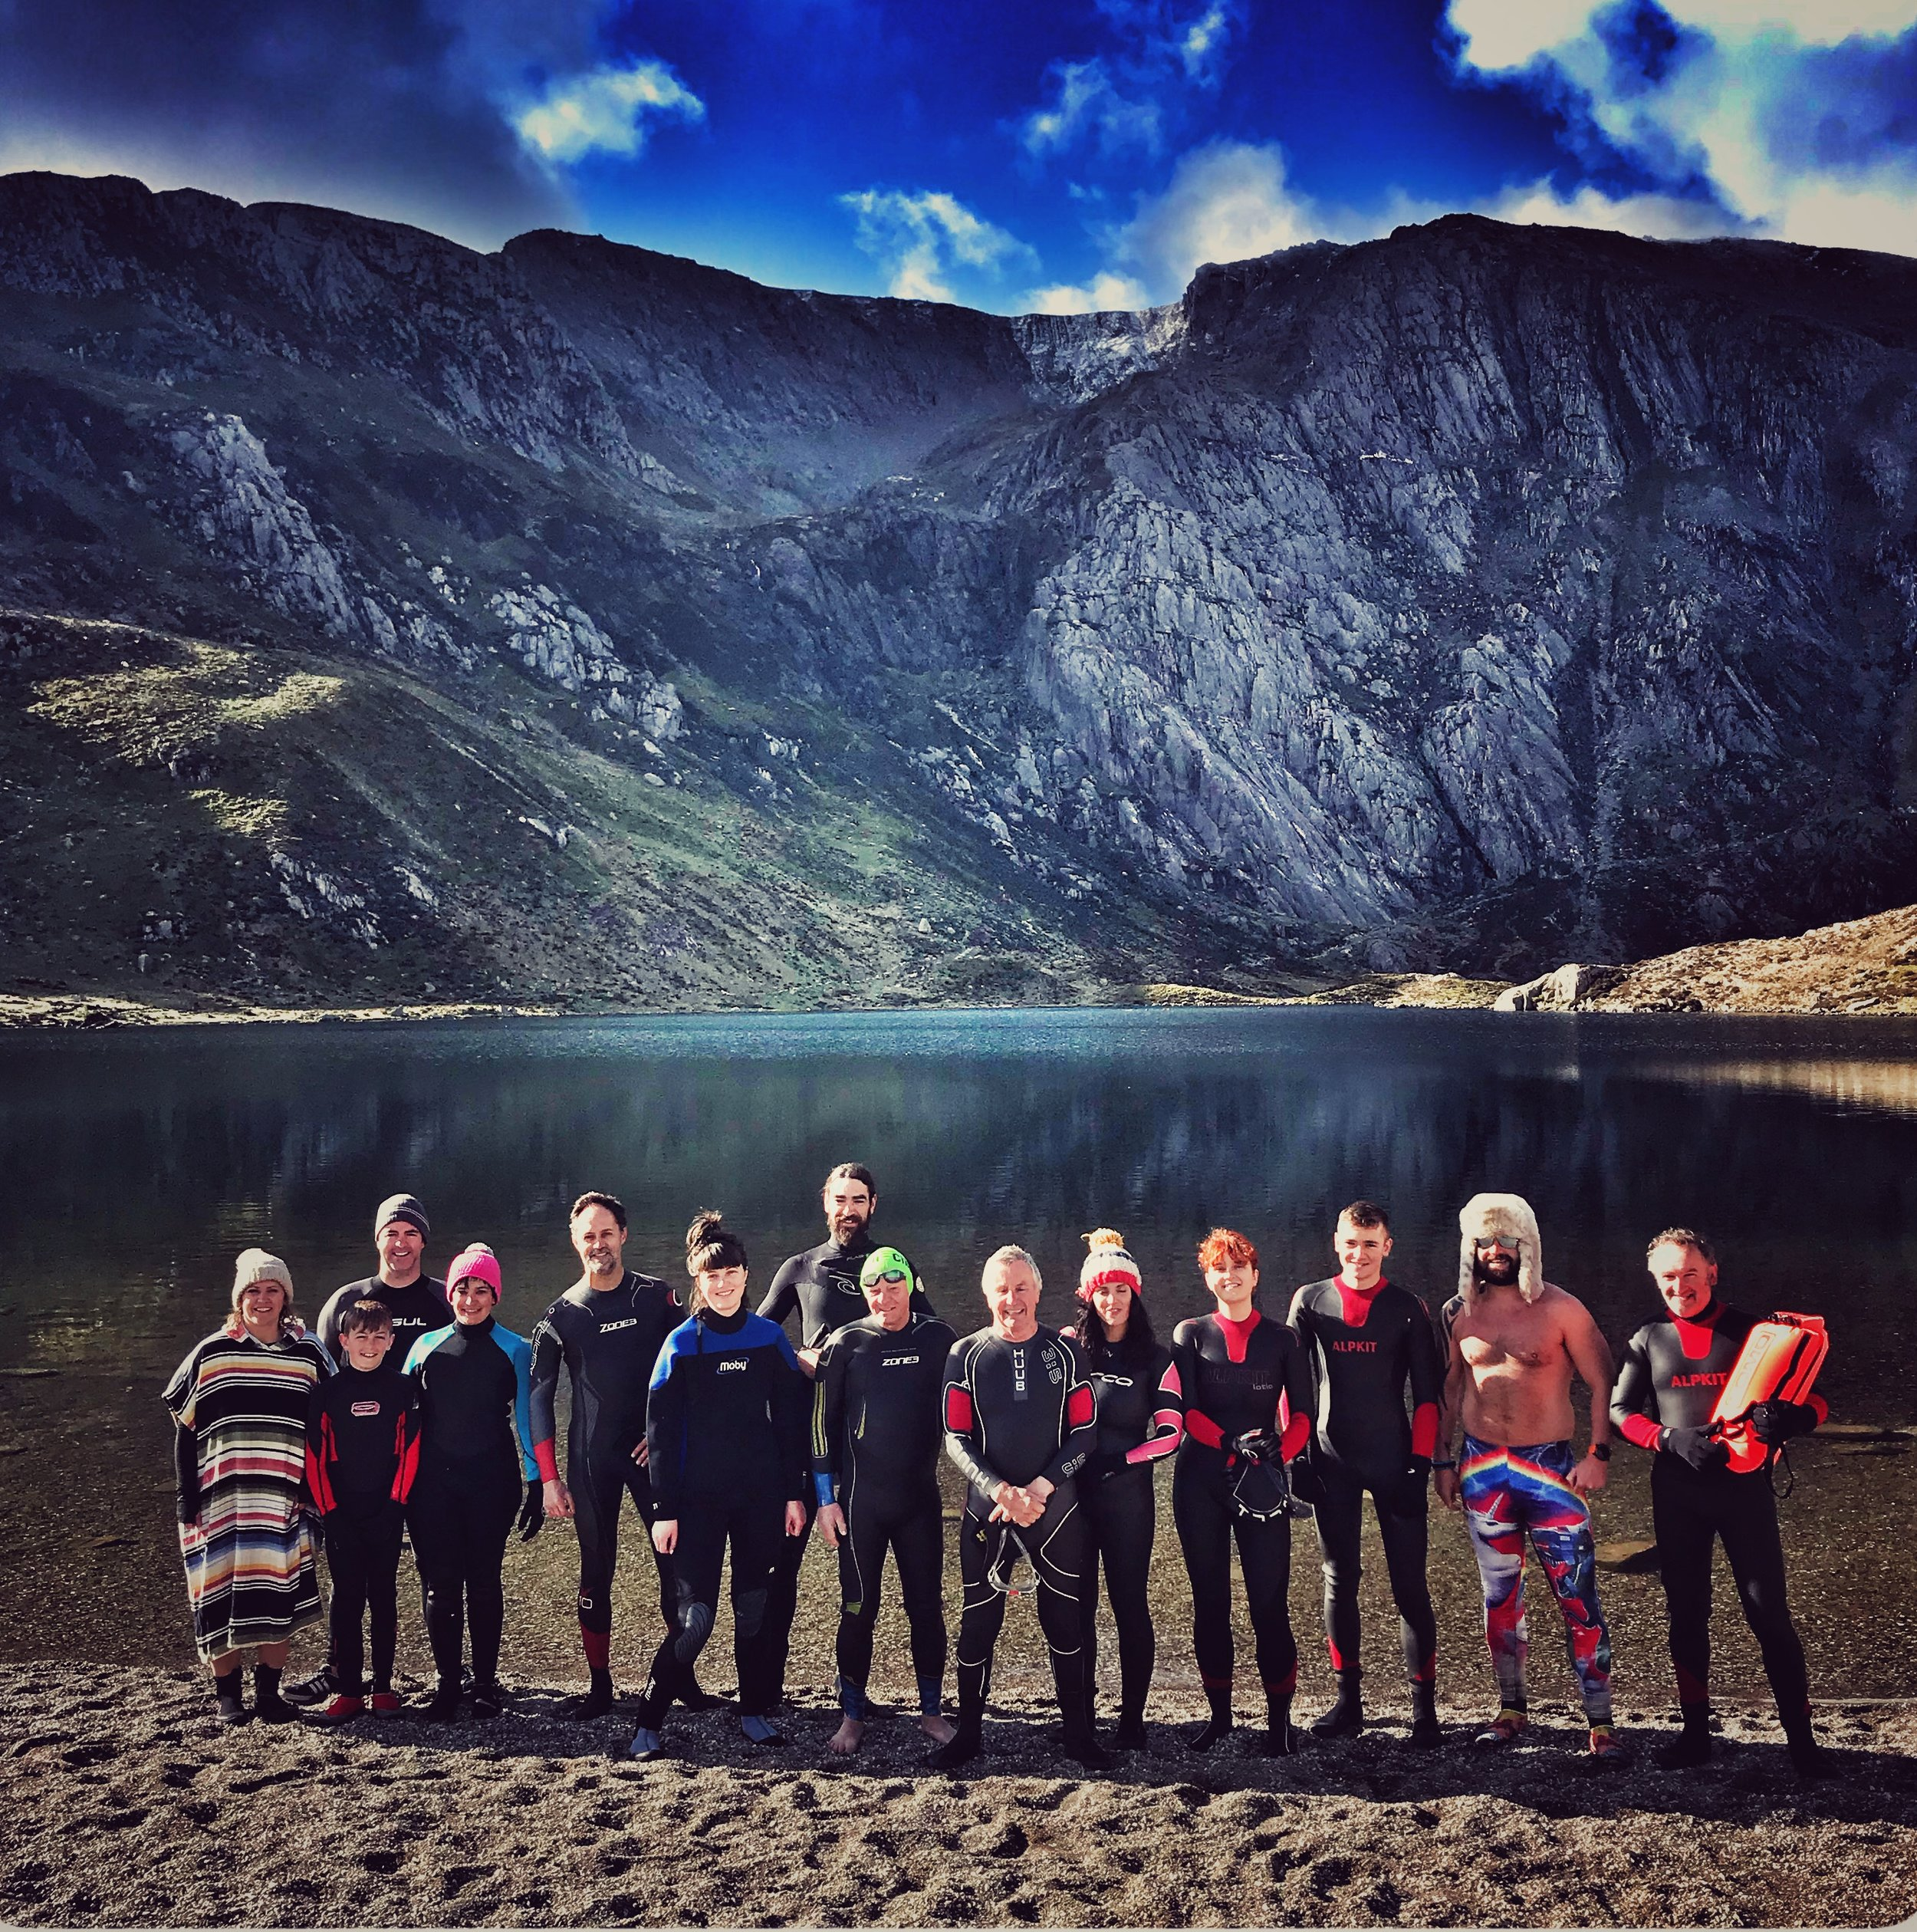 Swimmers at the edge of Llyn Idwal, Snowdonia